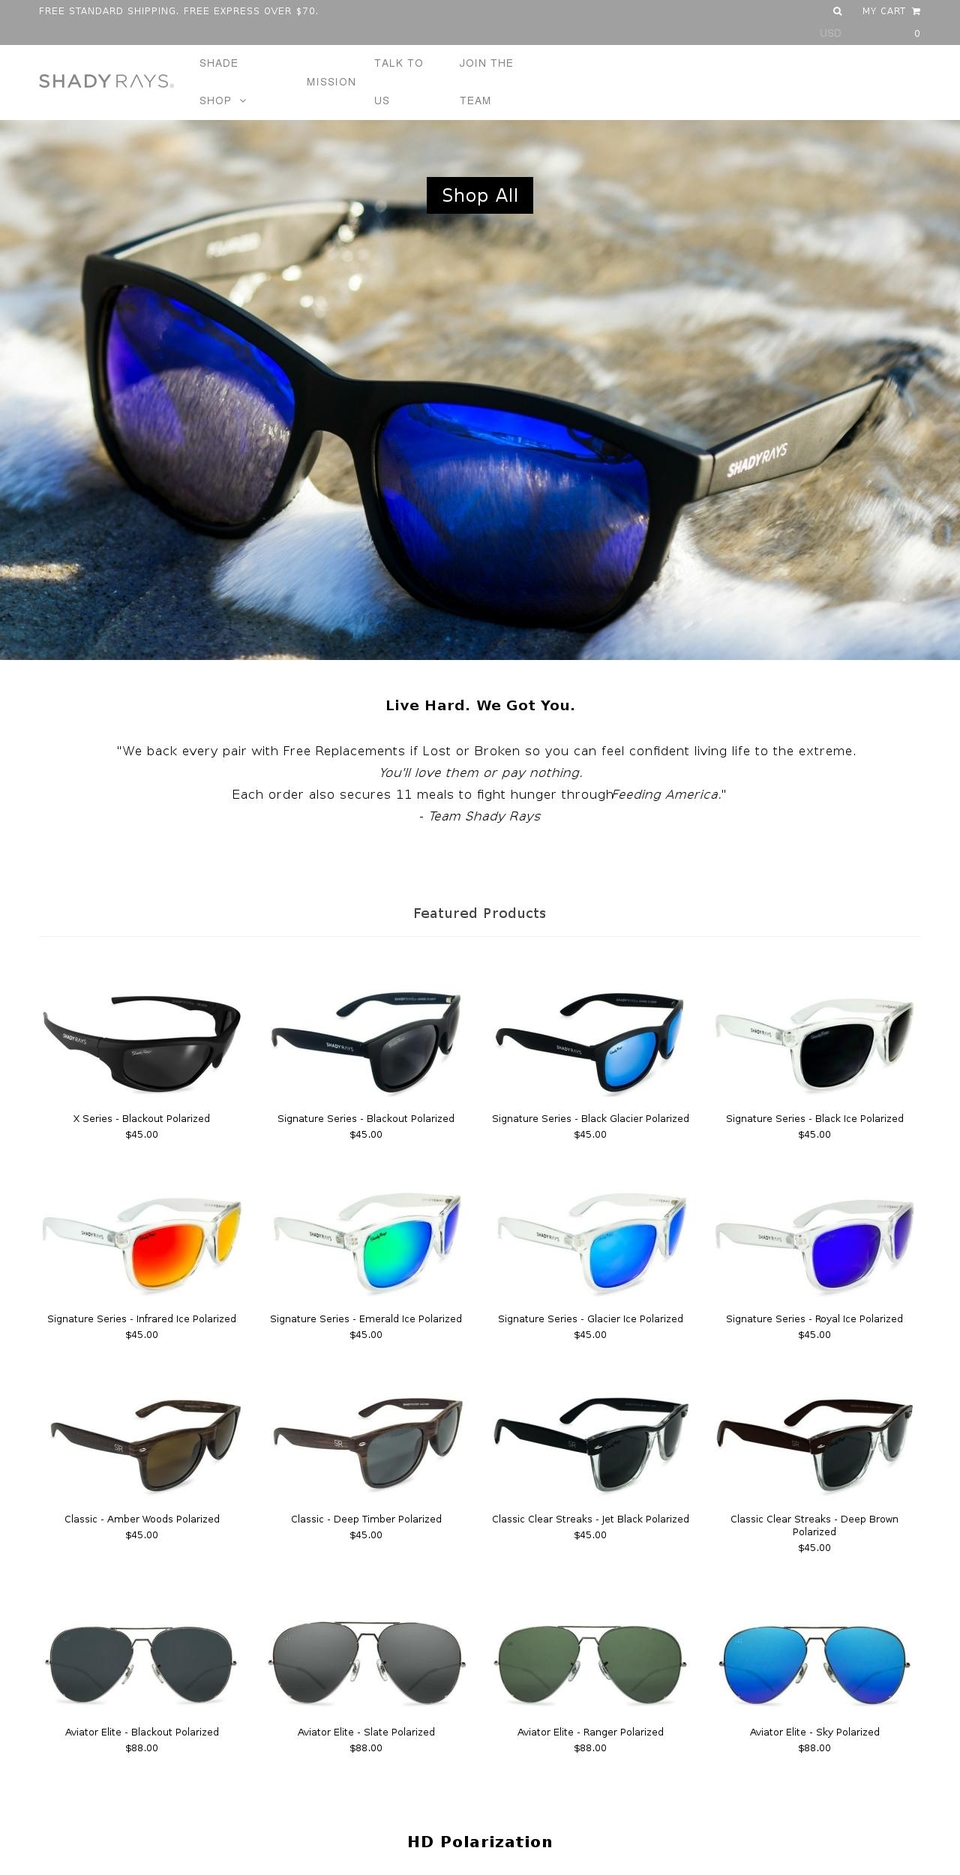 1be68be73622 Icon Shopify theme website, store - shadyrays.com